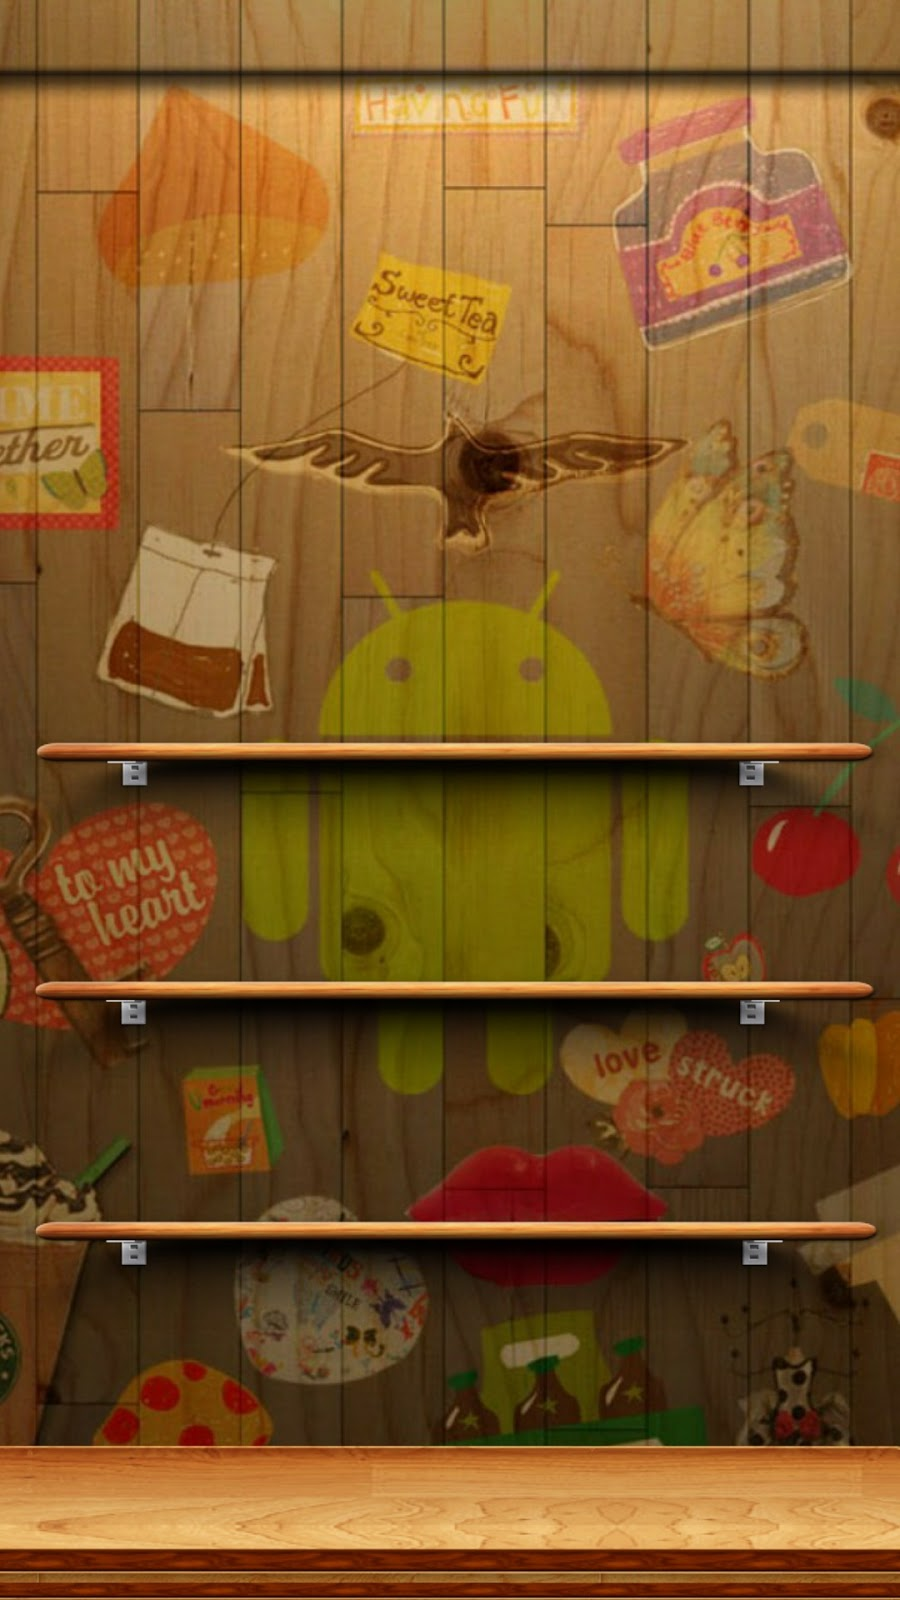 Simple Wallpaper Android Wood - android%2Bshelf%2Bhome  You Should Have_262934      .jpg